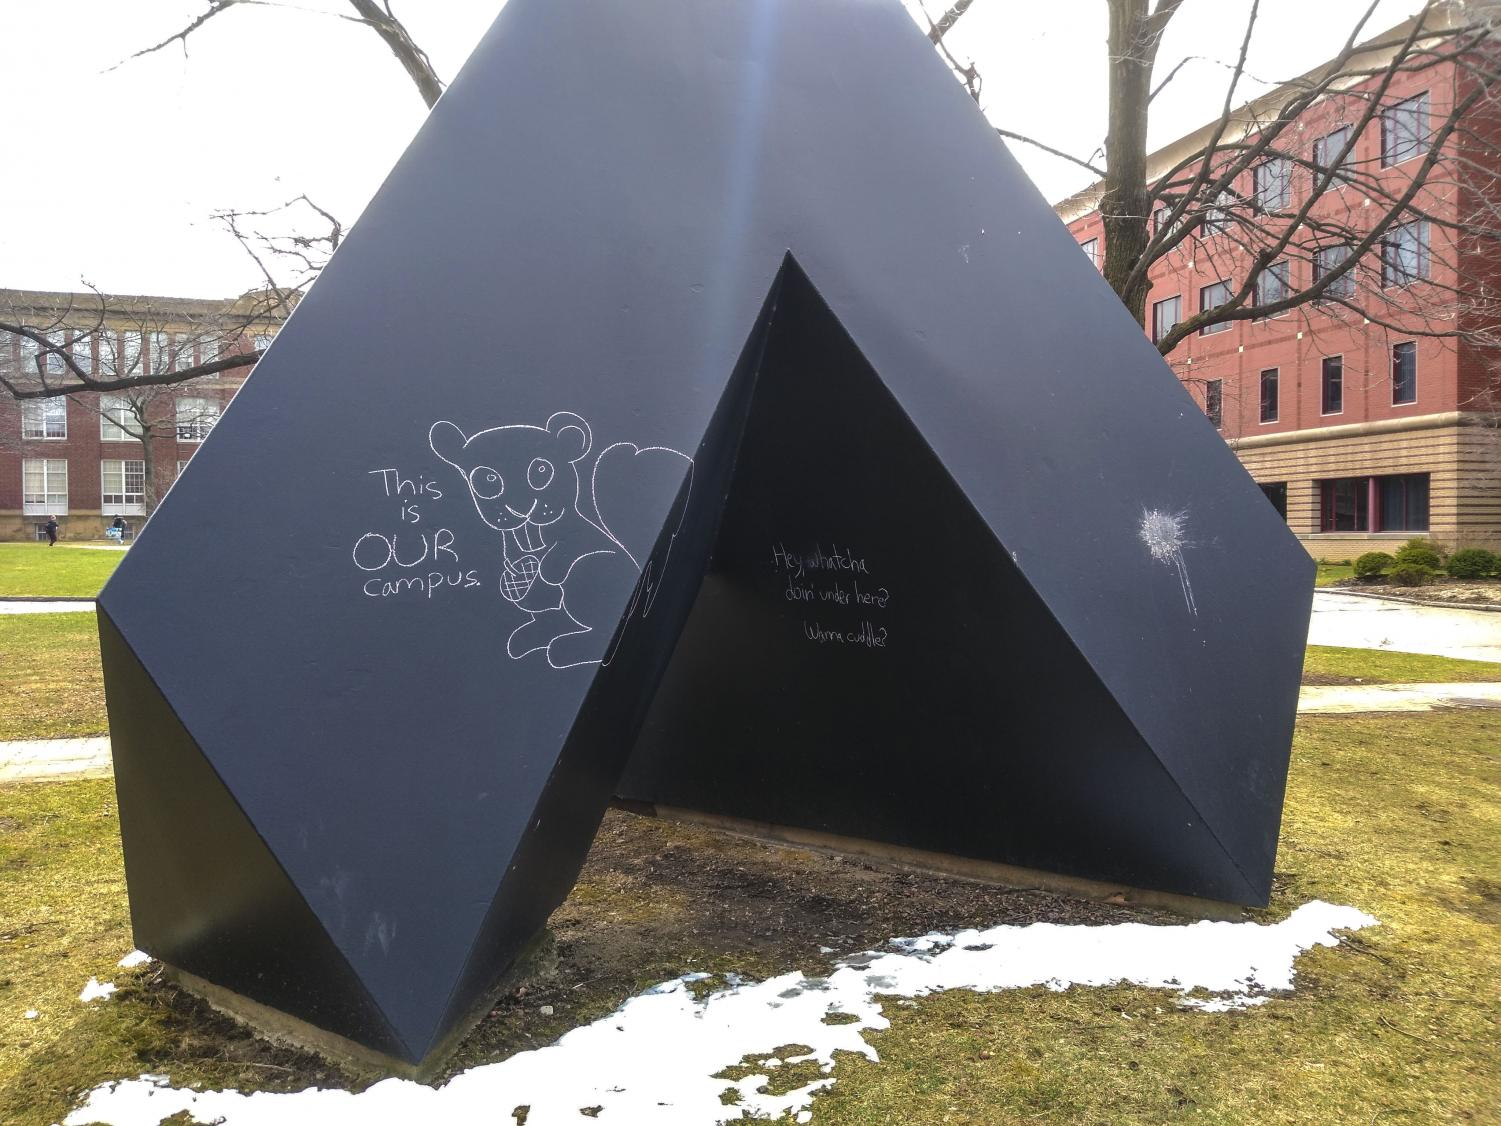 Spitball by Tony Smith is a staple of the Case Quad, but it has also ignited a debate over the difference between vandalism and community ownership.